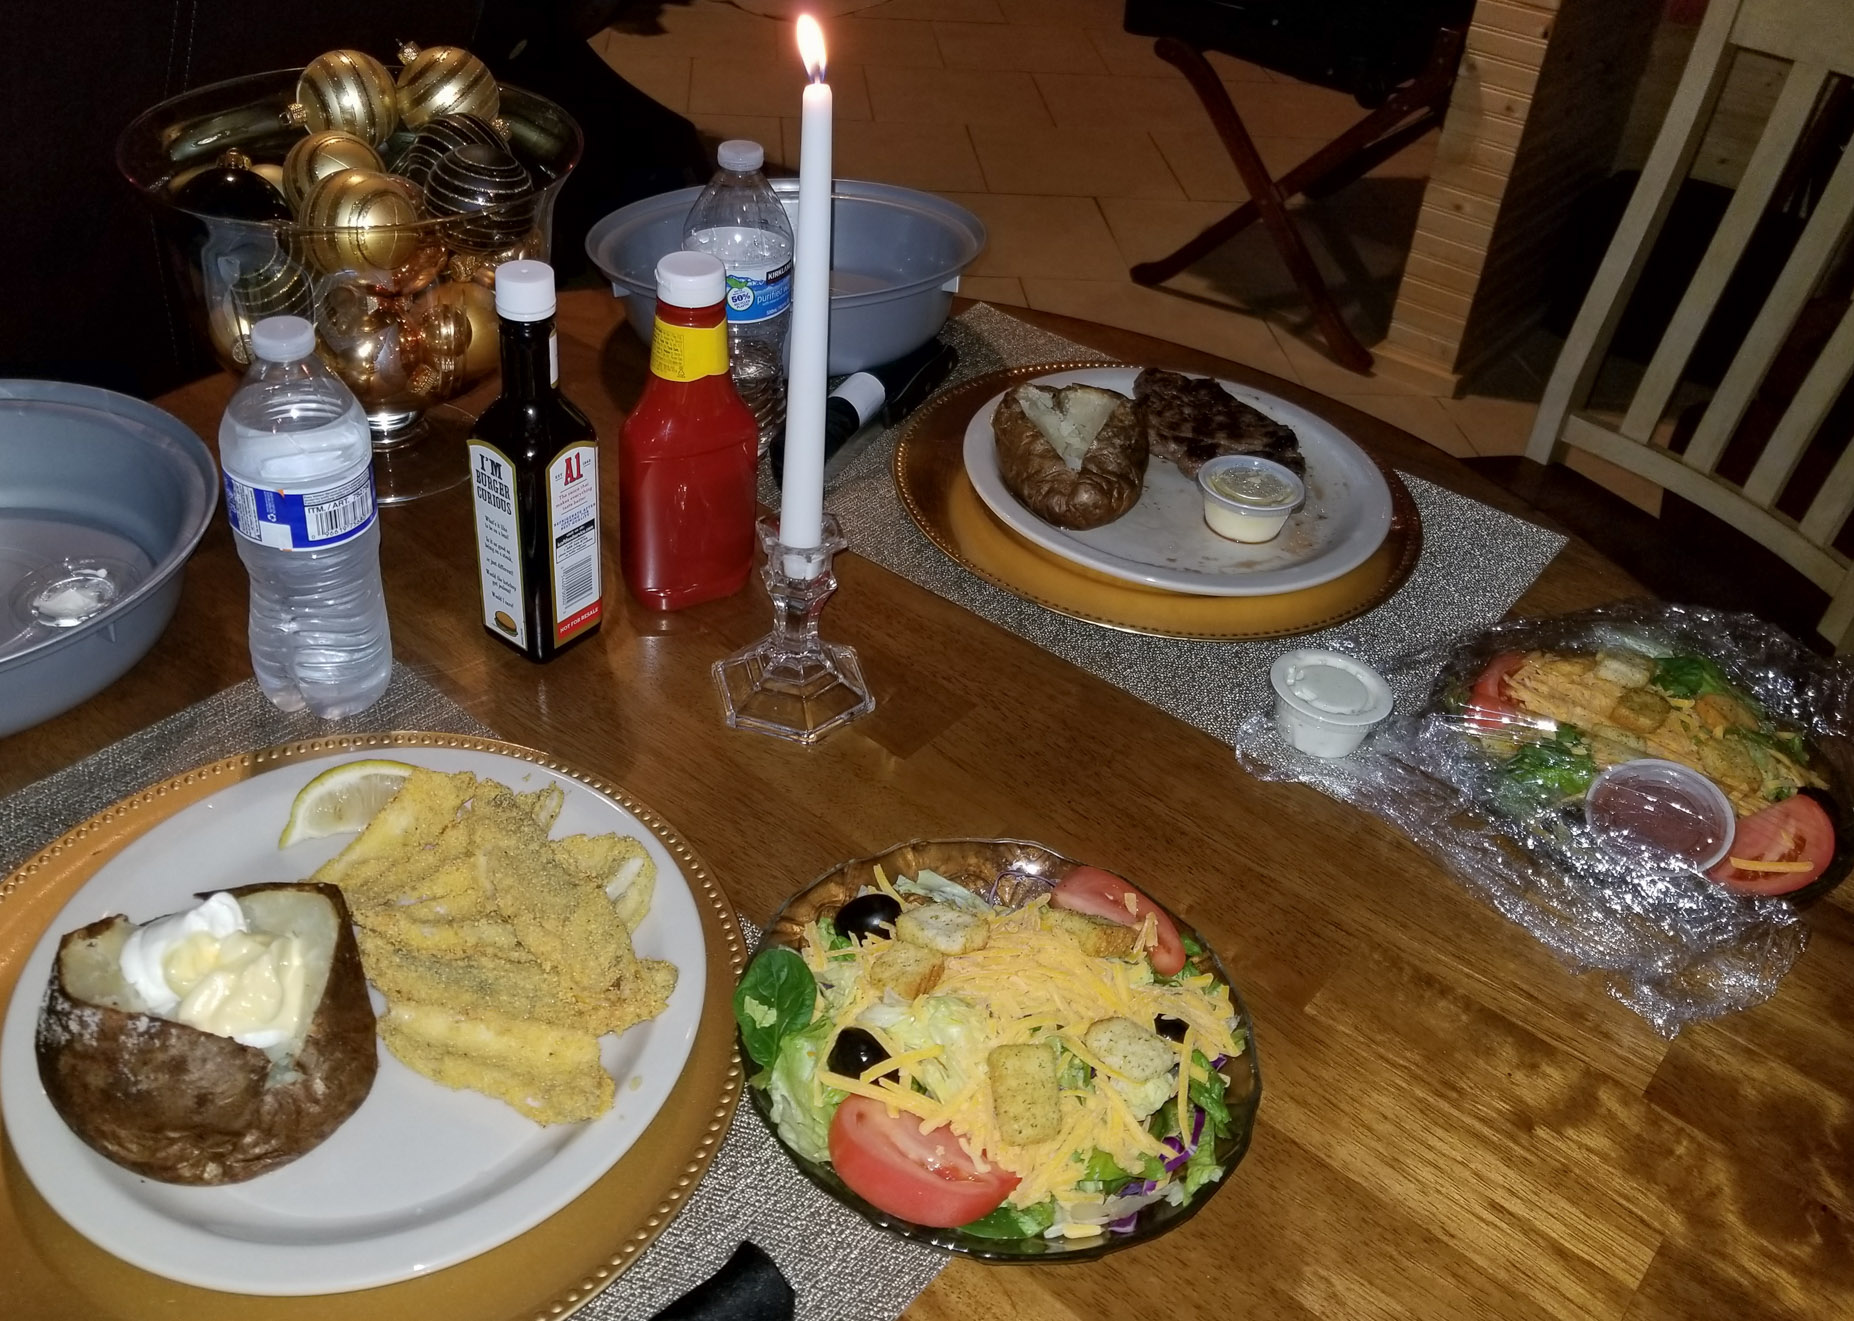 Serenity Springs - Candlelight dinner